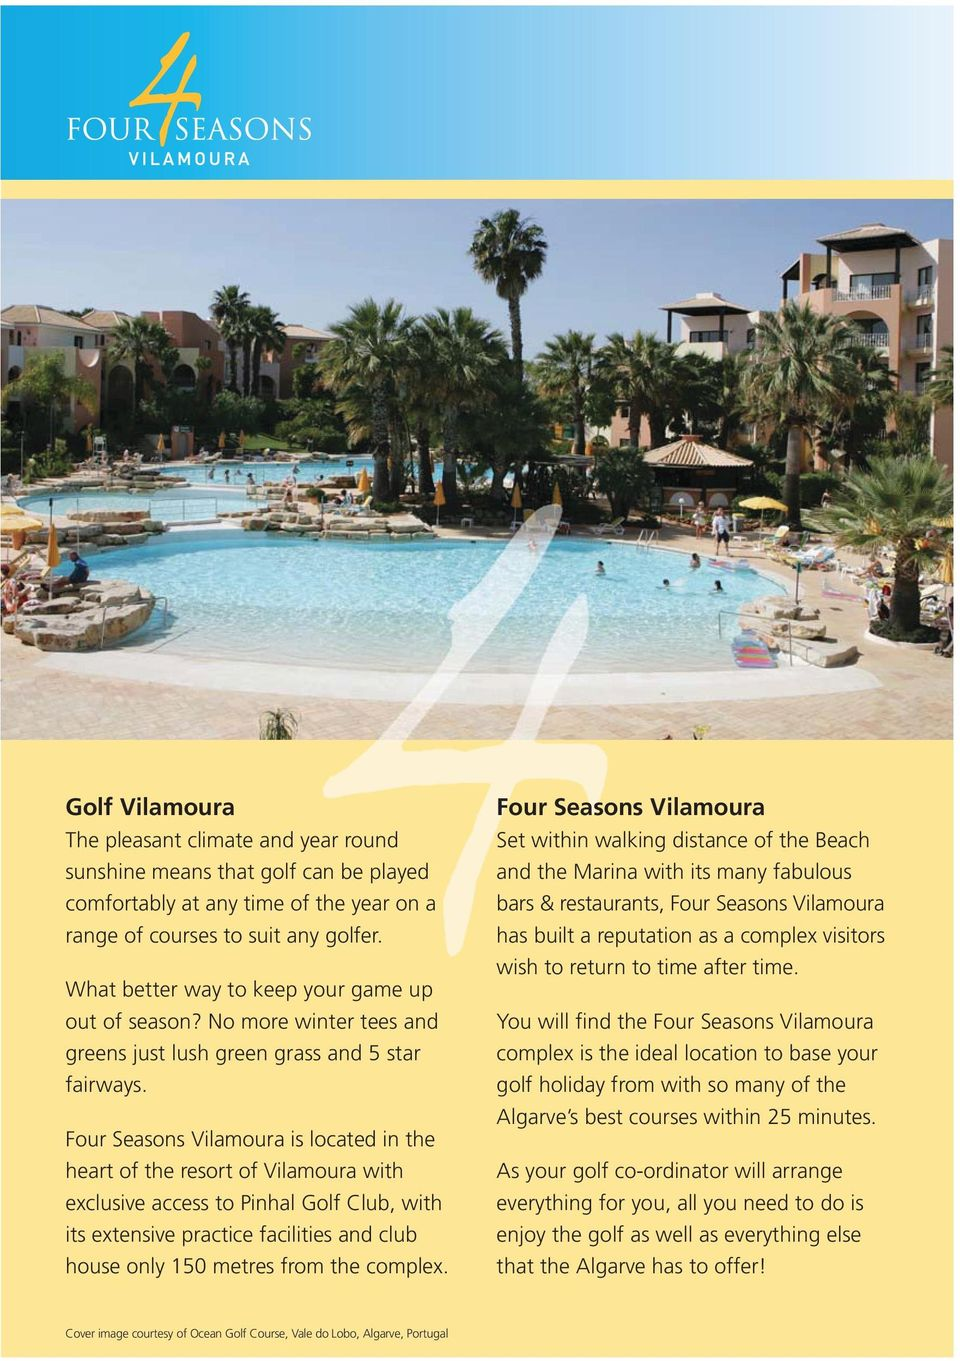 Four Seasons Vilamoura is located in the heart of the resort of Vilamoura with exclusive access to Pinhal Golf Club, with its extensive practice facilities and club house only 150 metres from the